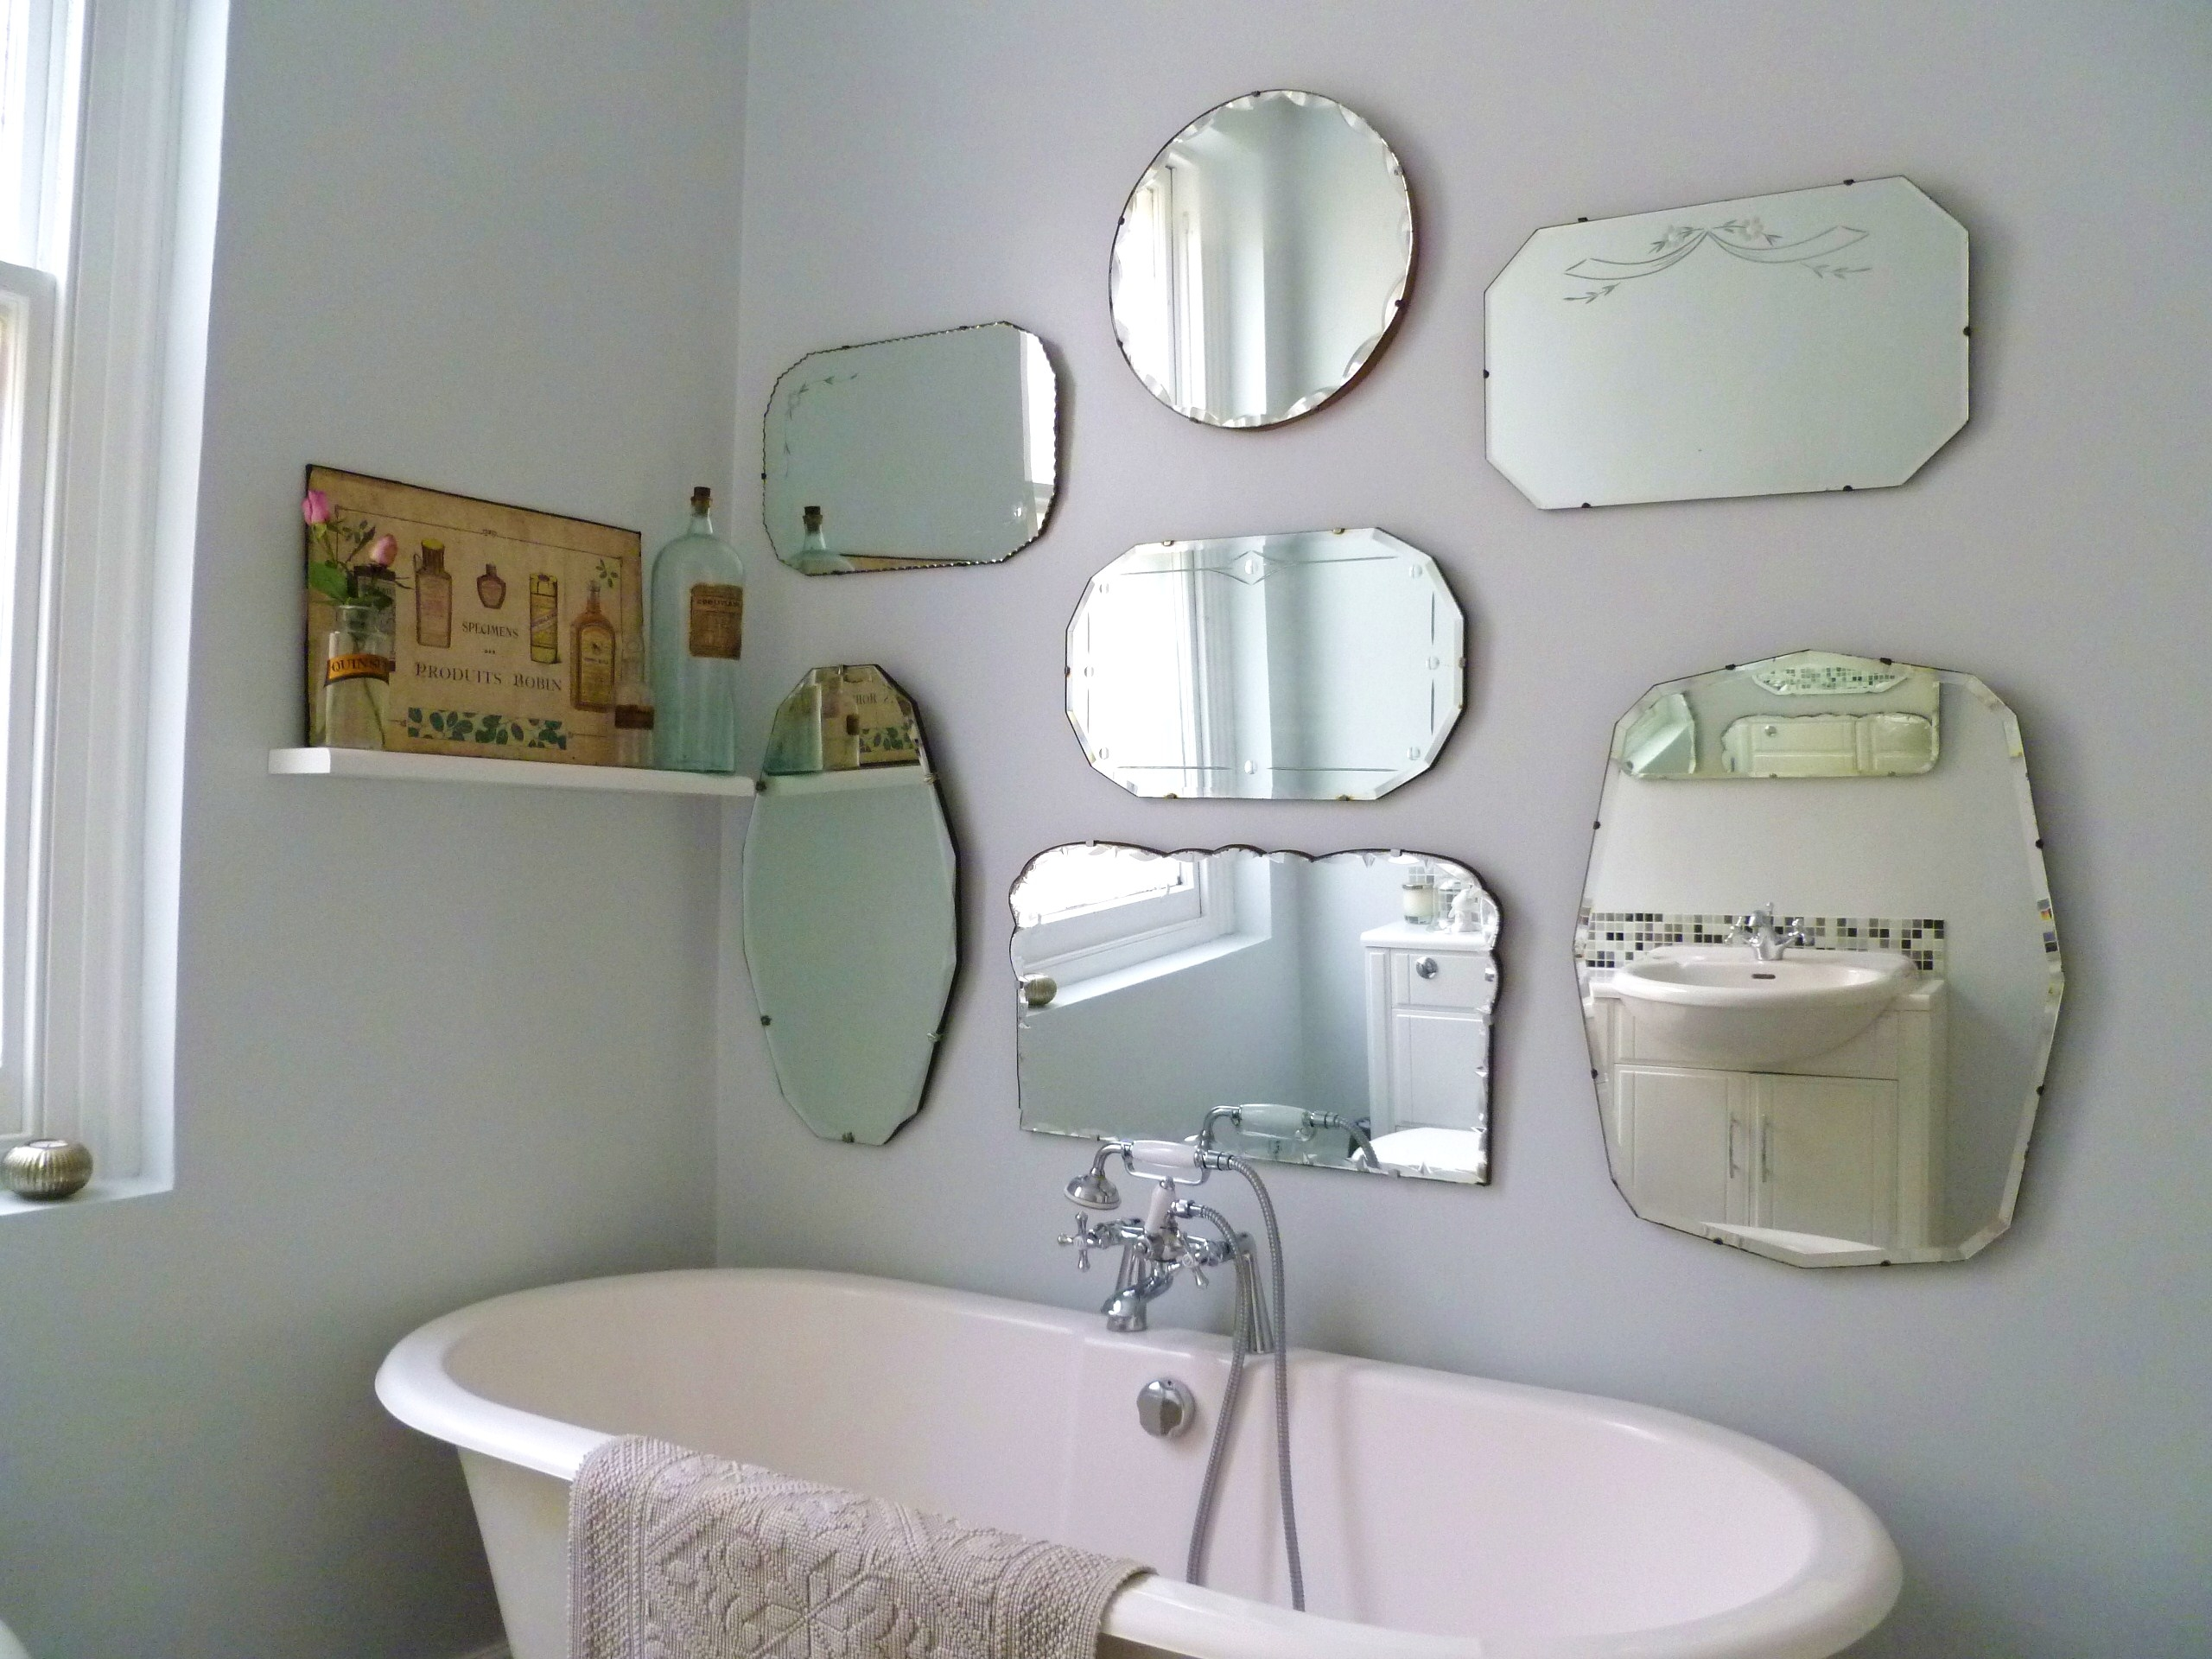 Modest Design Vintage Wall Mirrors Prissy Ideas Beautifull In Vintage Style Bathroom Mirror (Image 7 of 15)